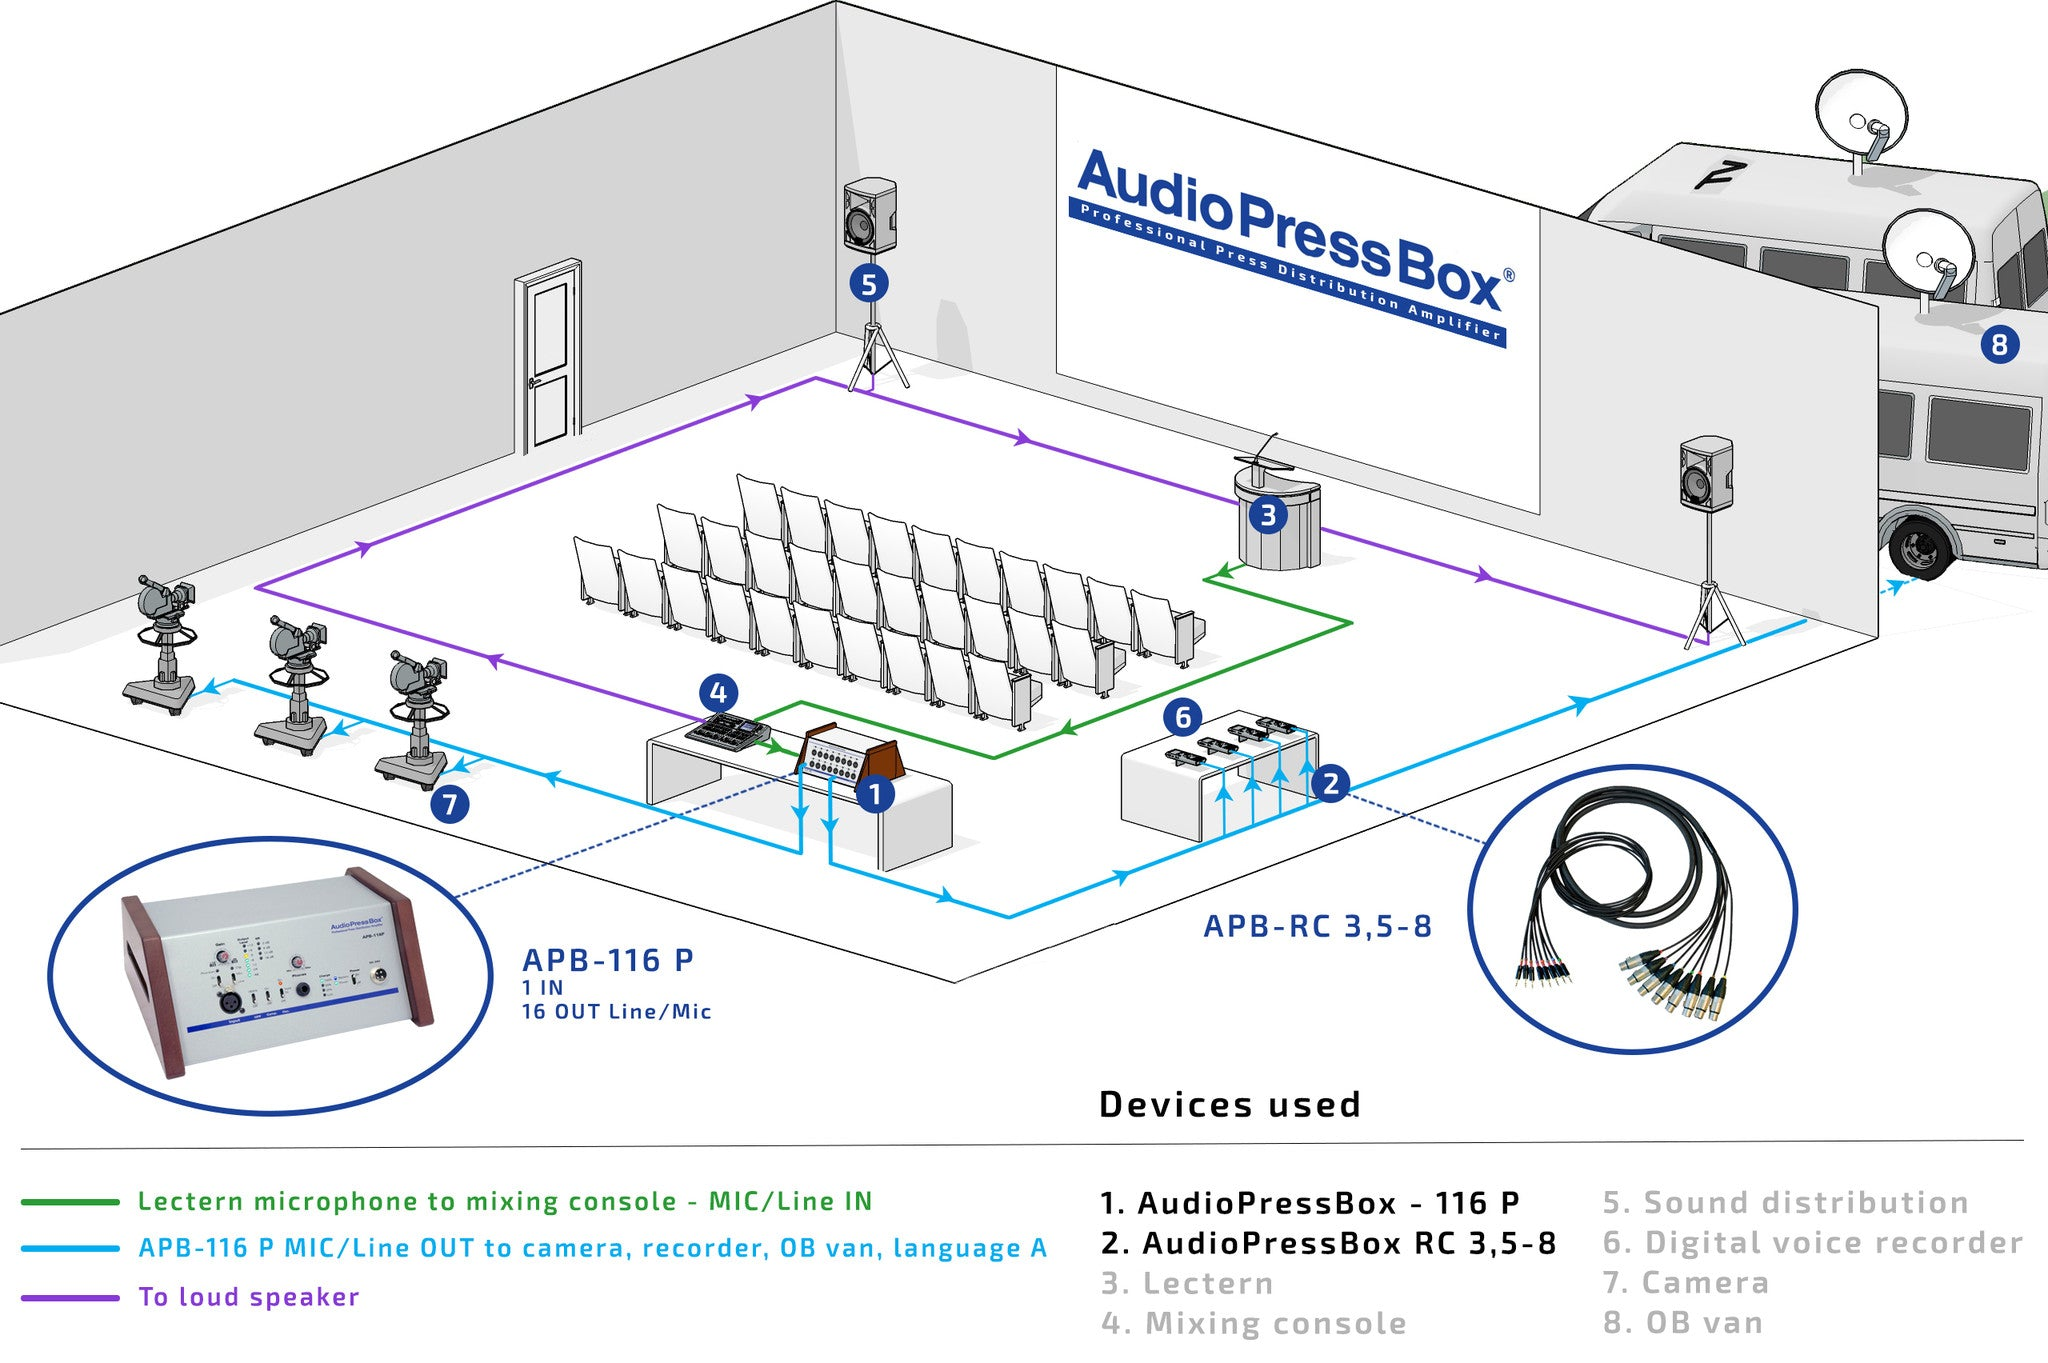 AudioPressBox, Mult Box PressBox, Mult Box, Press Patch Box, Pressesplitter, APB-116 P